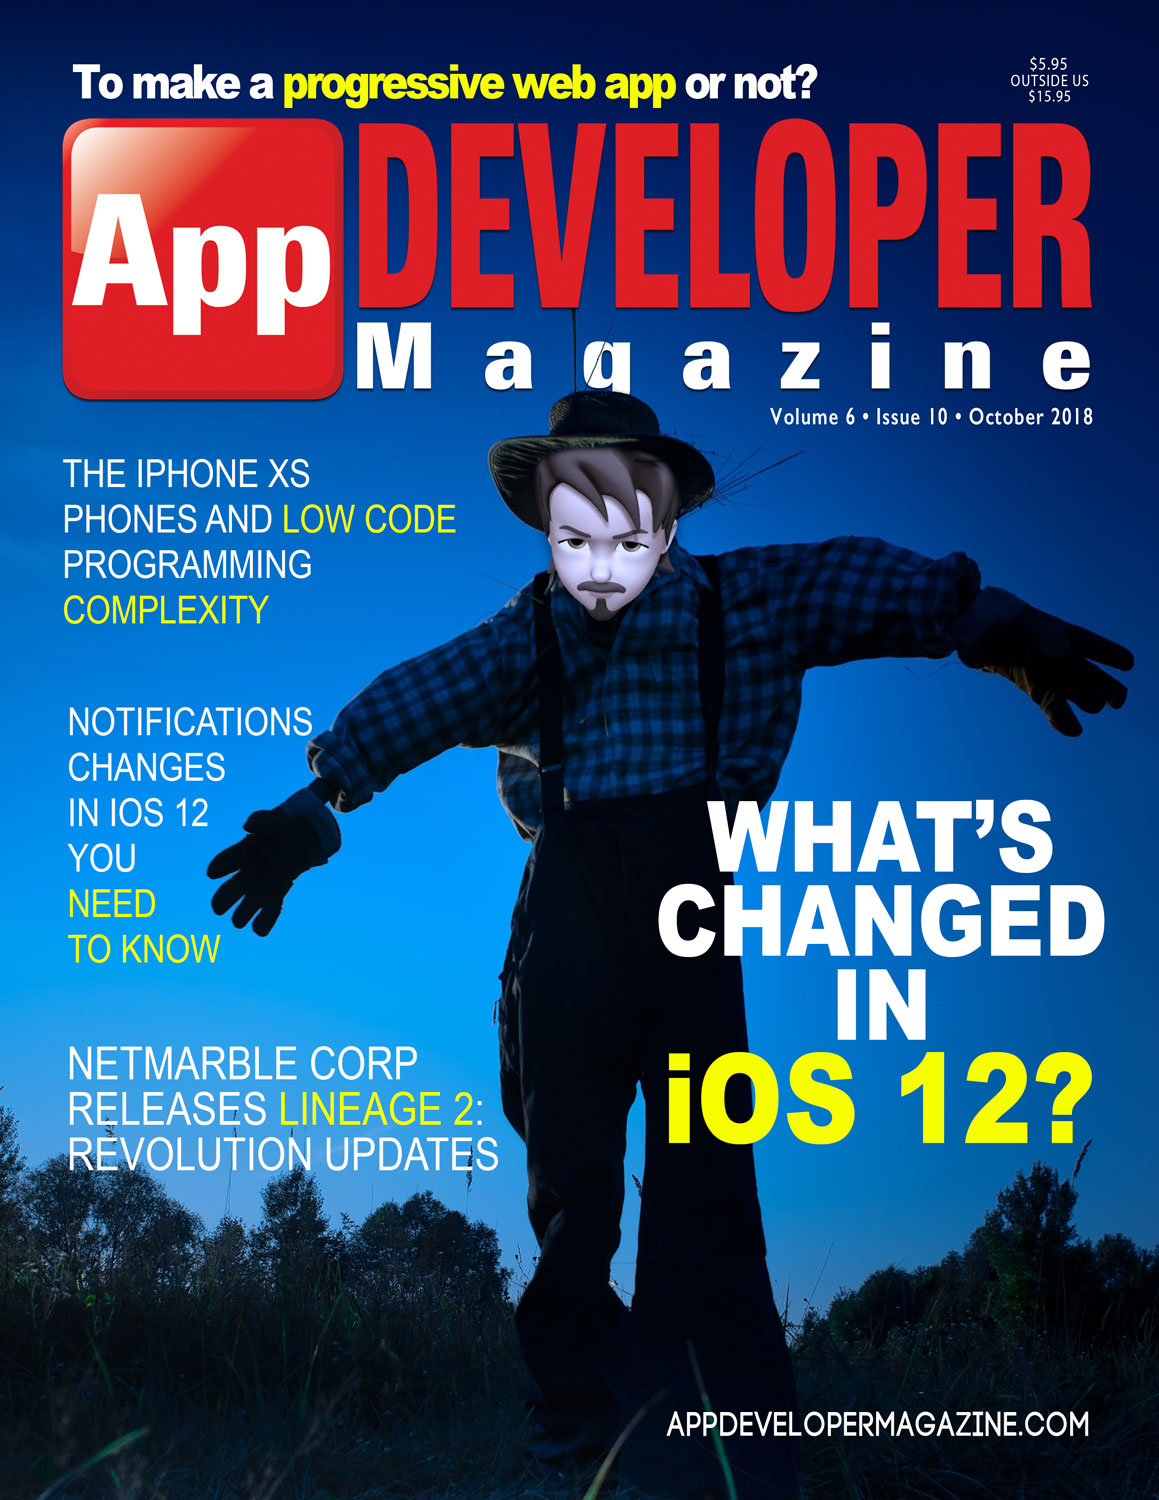 App Developer Magazine October 2018 Cover